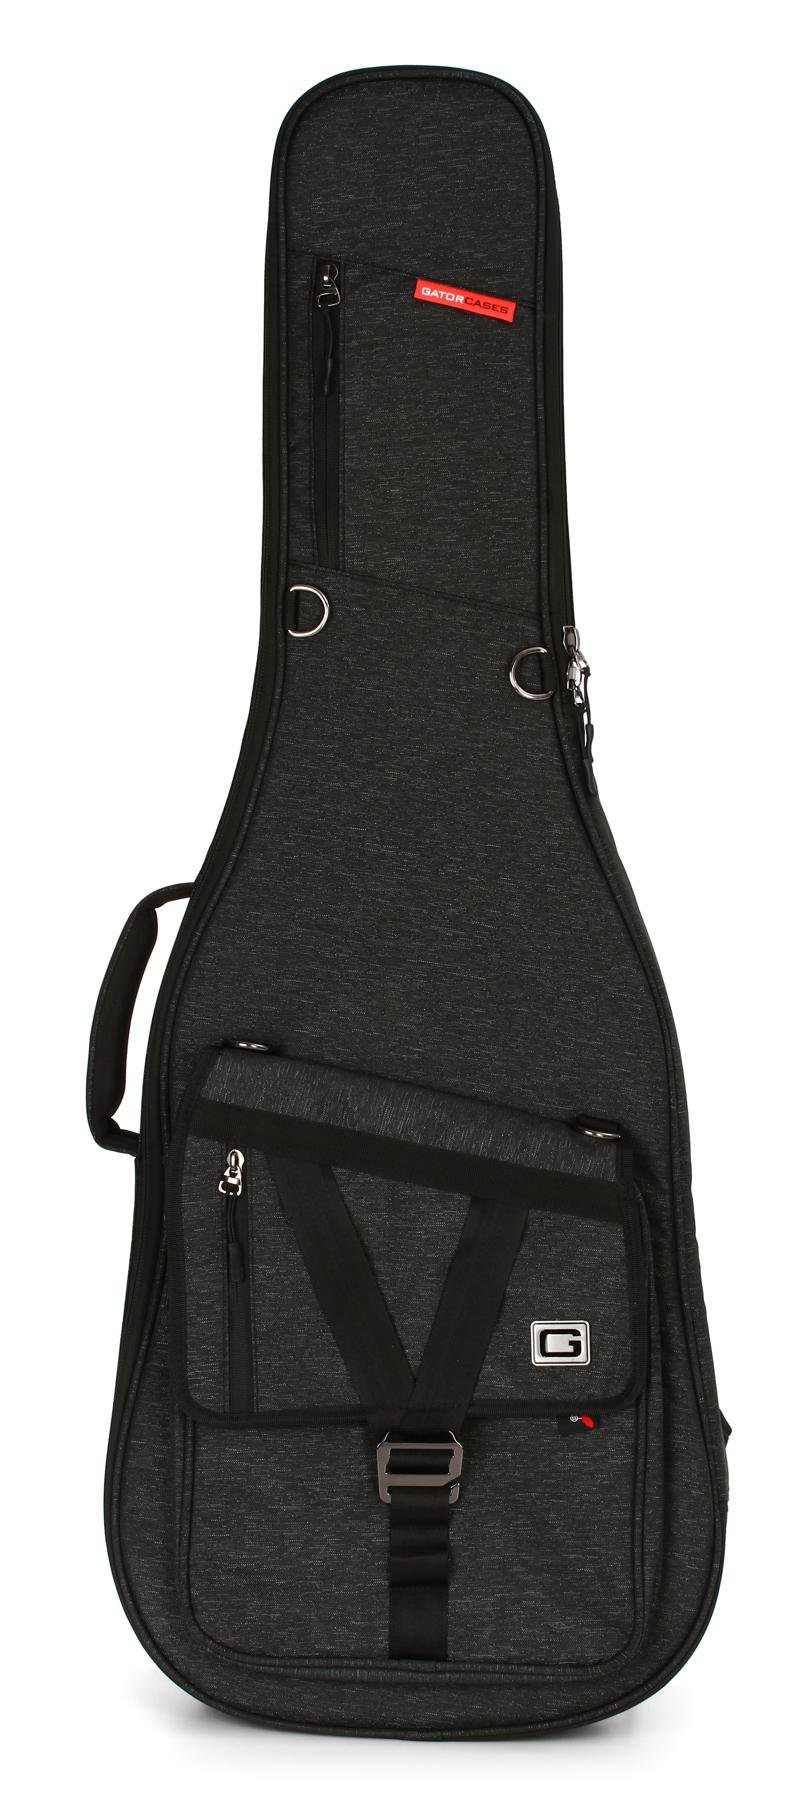 Black 2-Electric Guitar Carrying Gig Bag Padded Soft Case W// Rubber Base Bumper